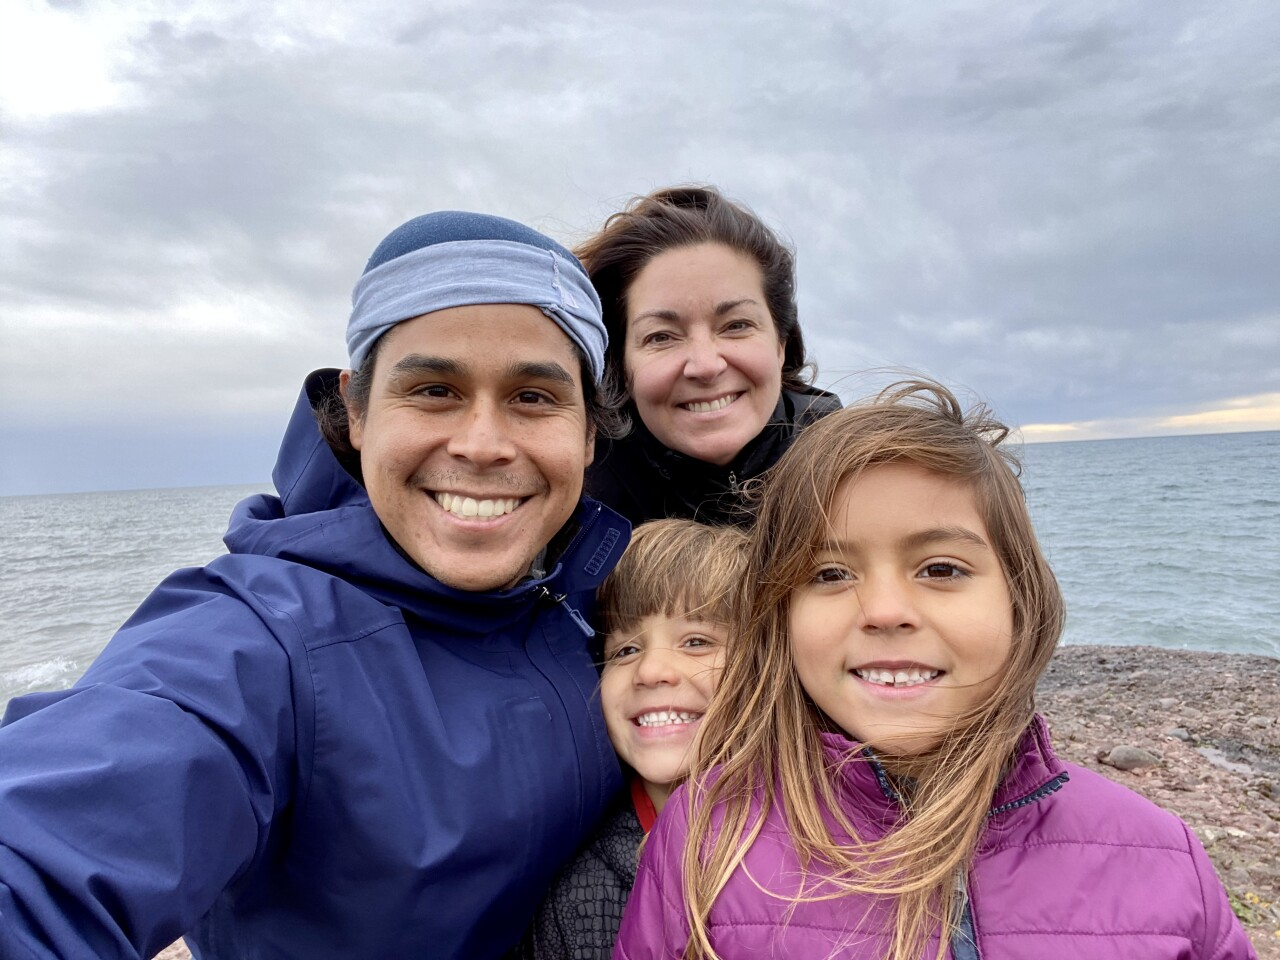 Jose Aste and his family